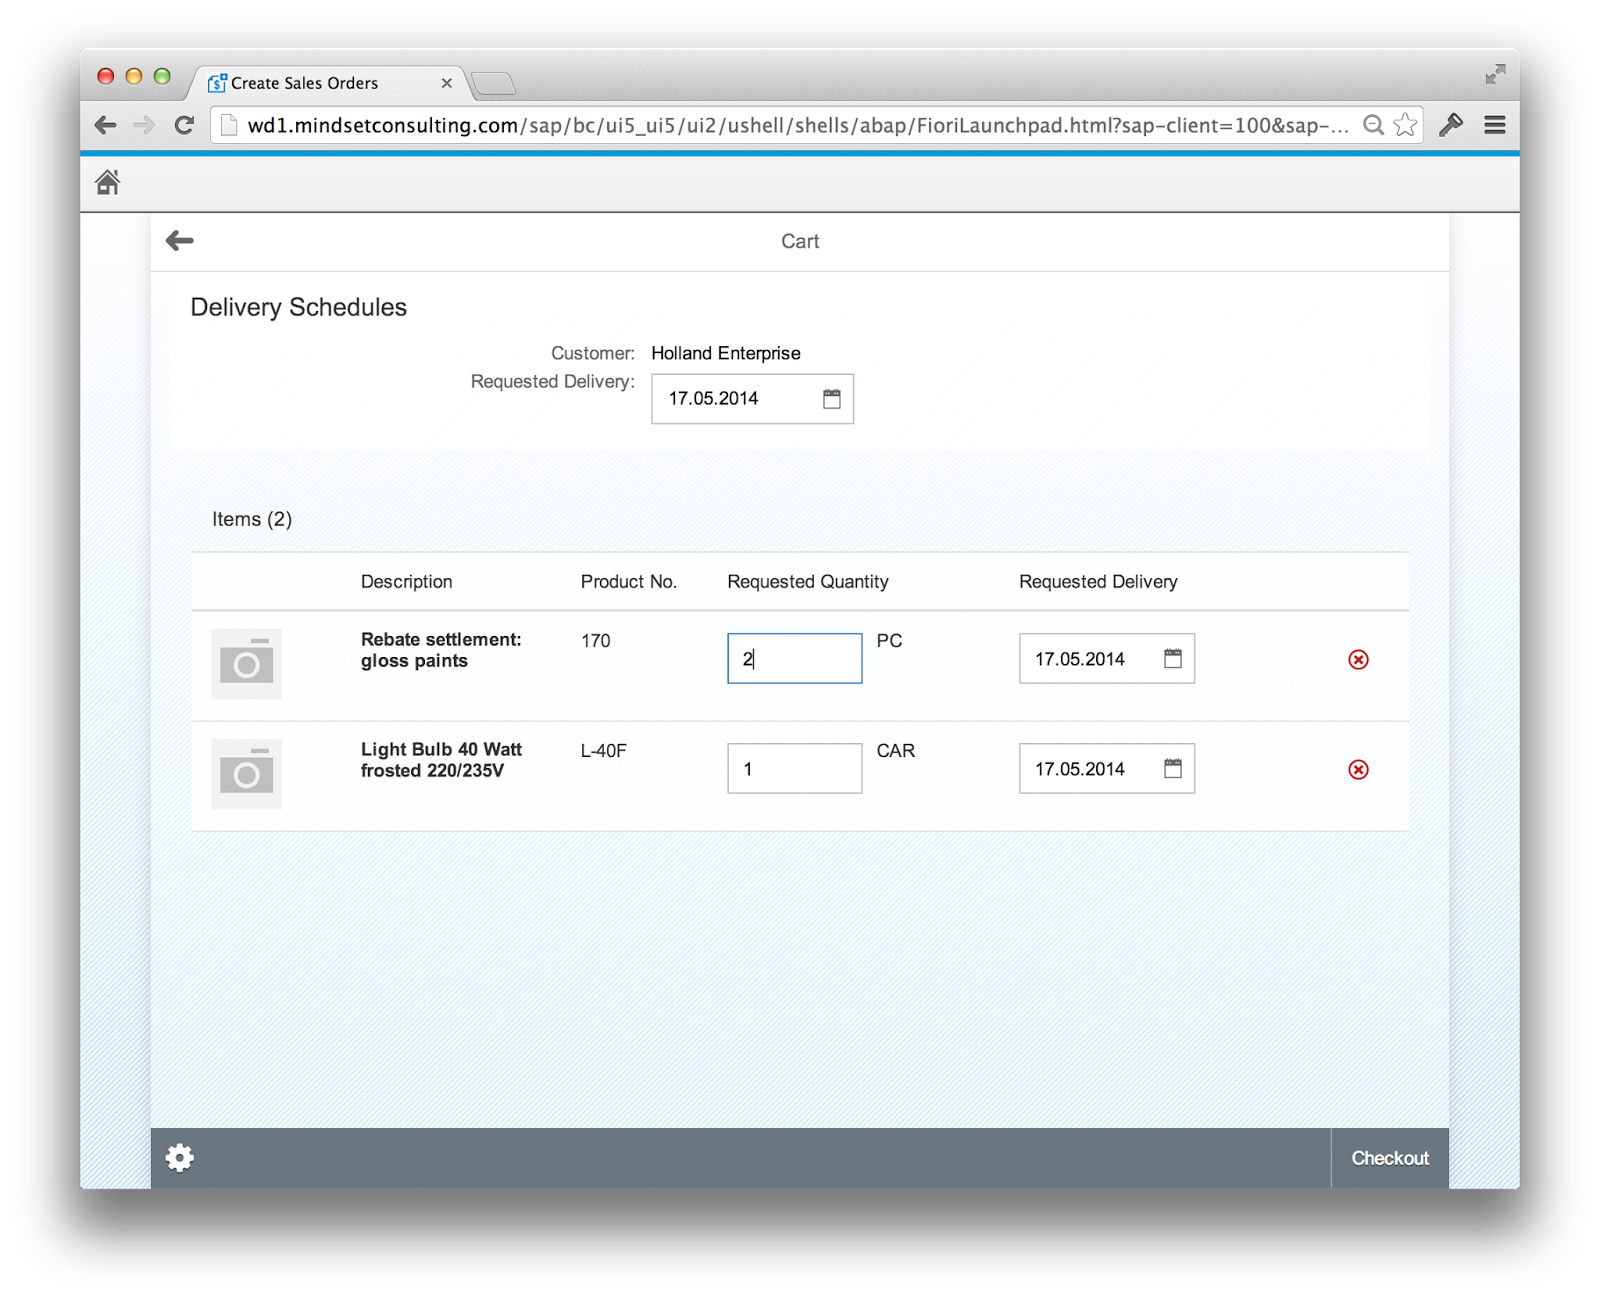 SAP Fiori Create Sales Order - Change Quantity